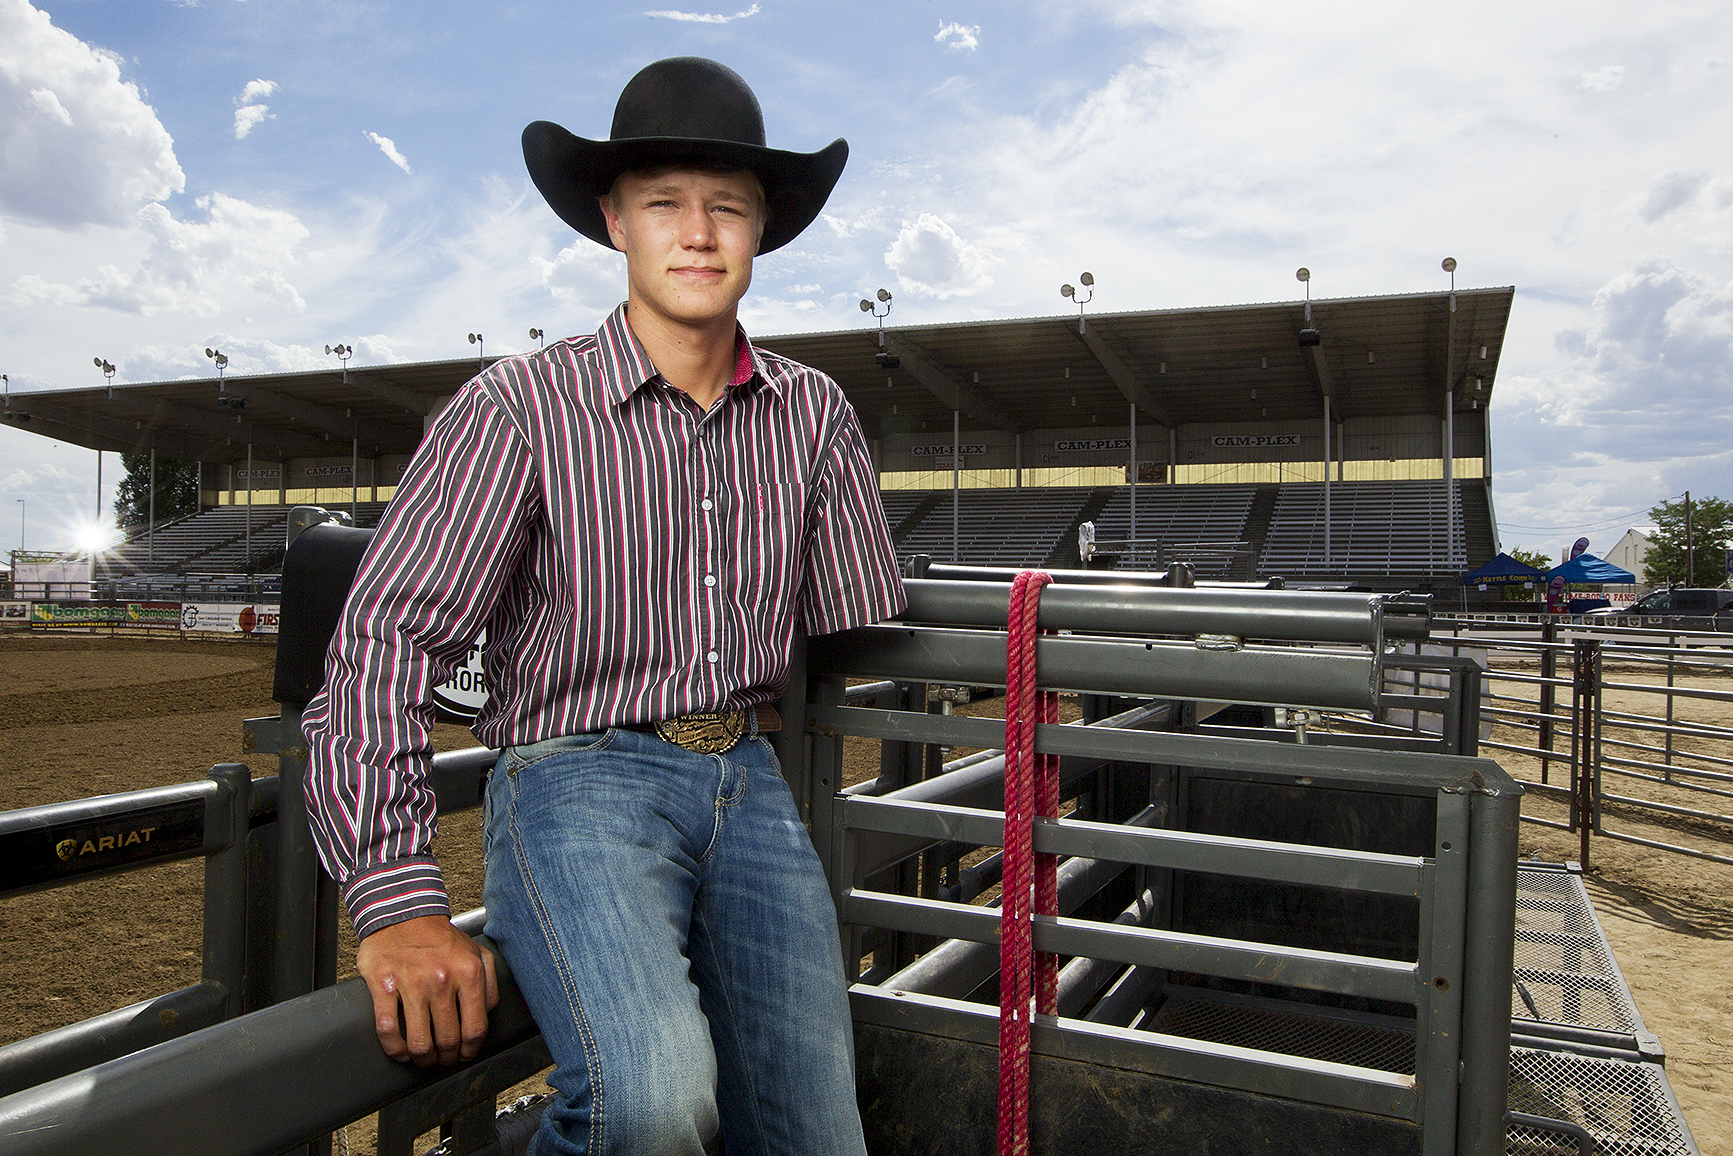 Nathan Urie, a saddle bronc rider from Ferron, Utah, qualified for his first NHSFR this year as a high school senior.